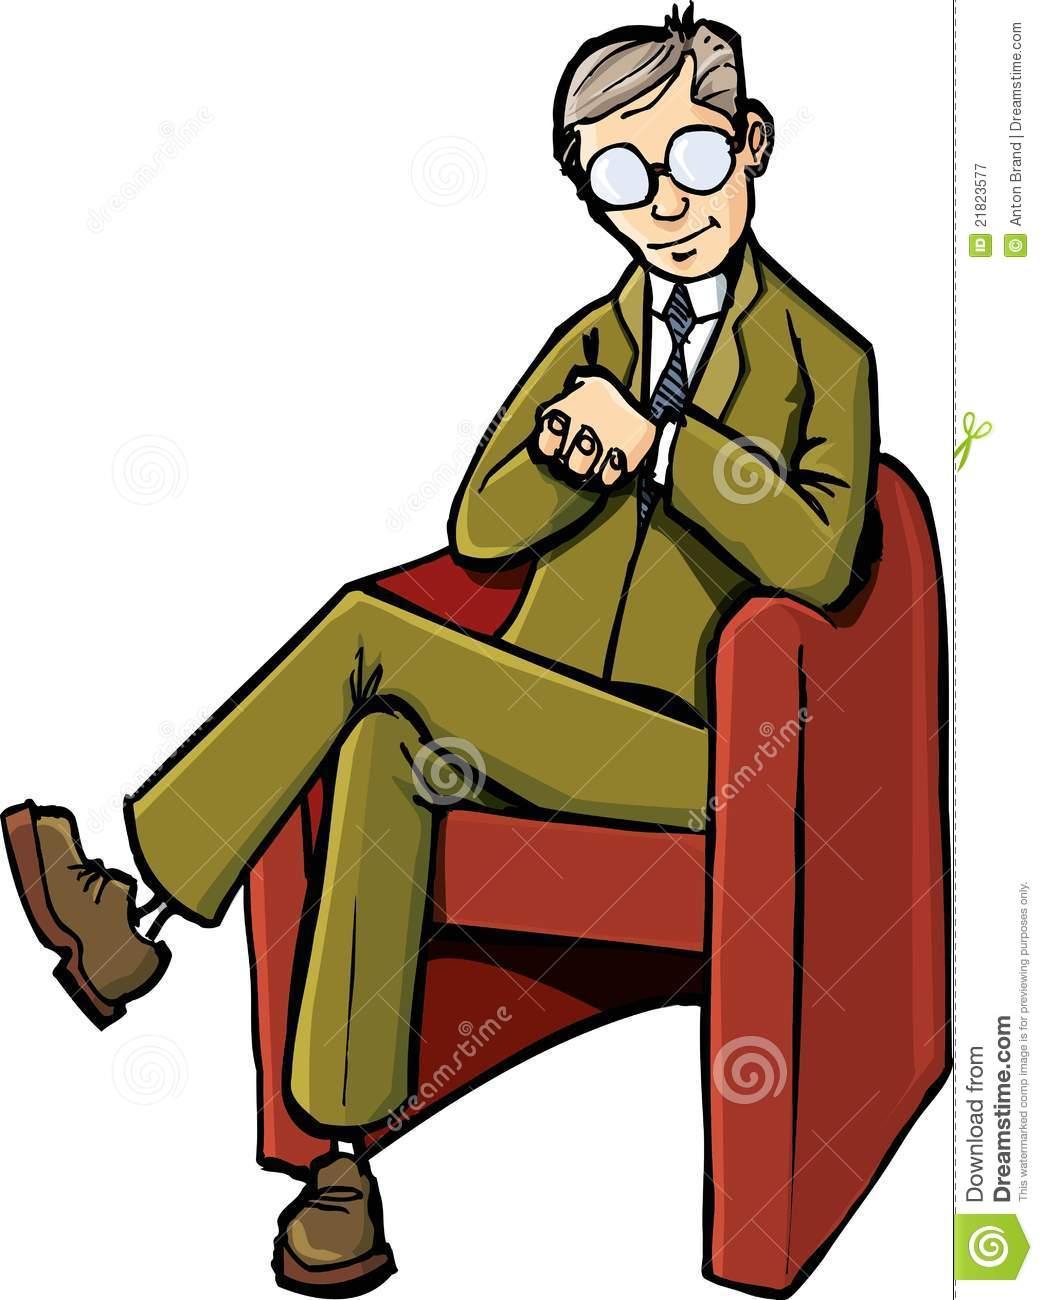 Cartoon Psychiatrist Sitting On His Chair Royalty Free Stock ...